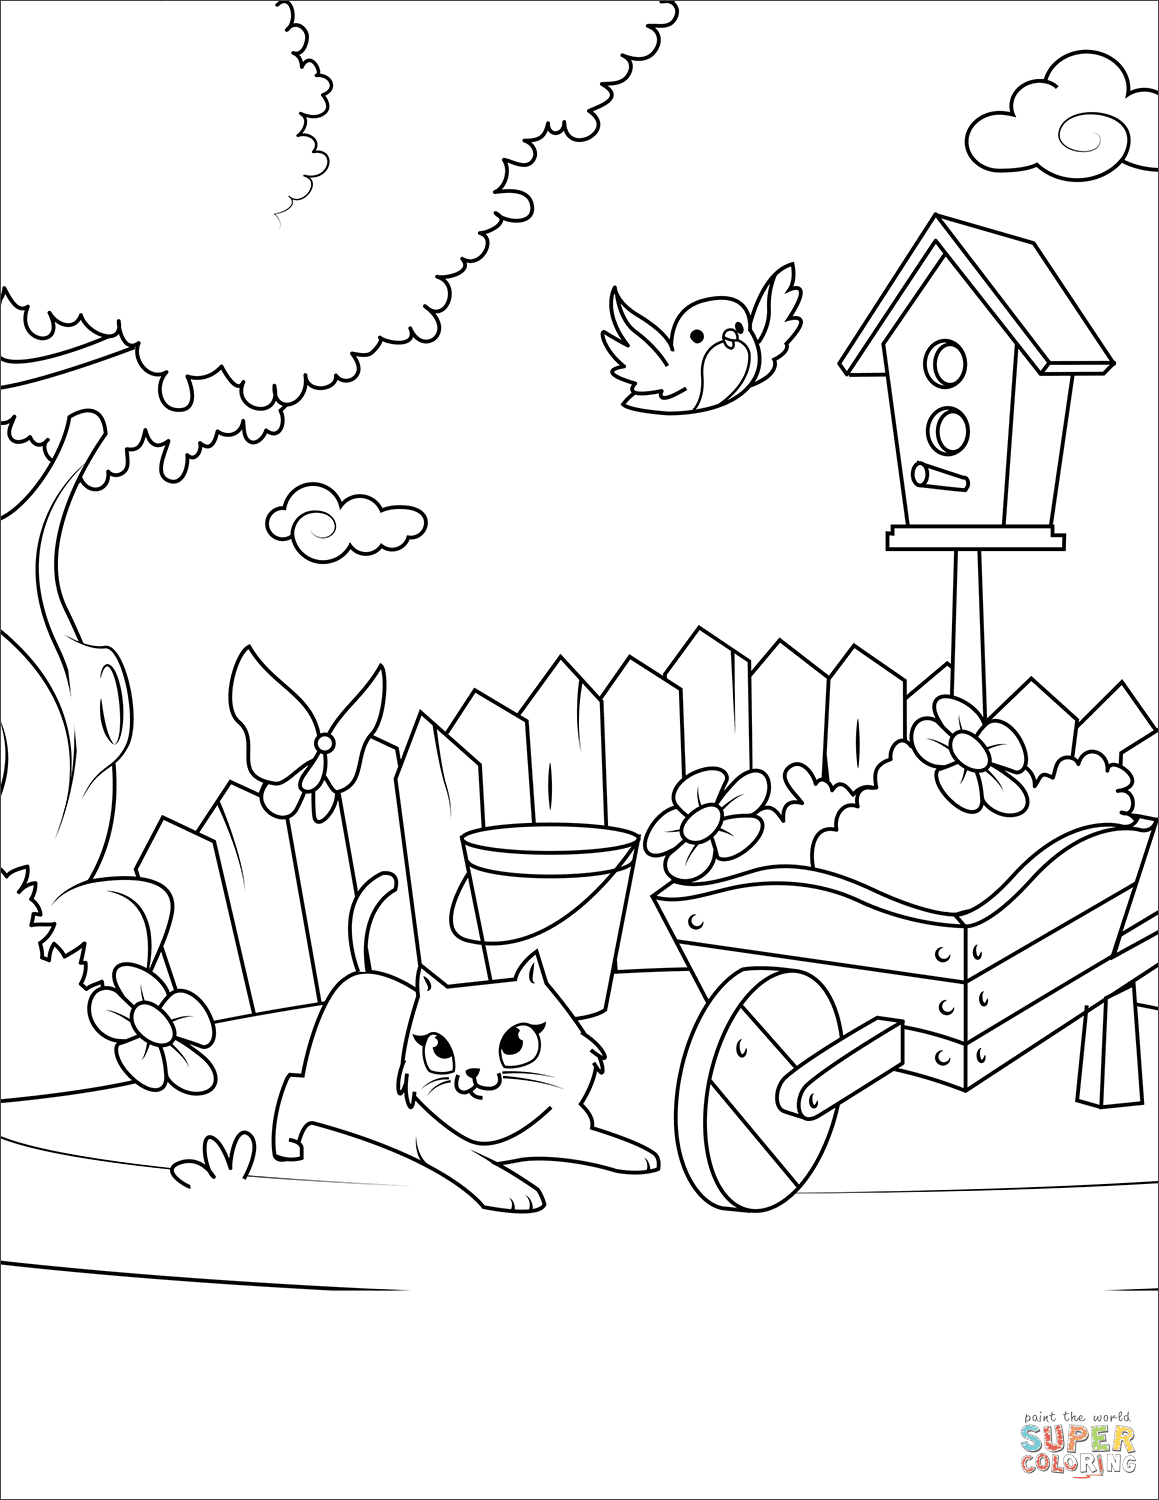 Cat Playing with a Butterfly in the Yard coloring page ...